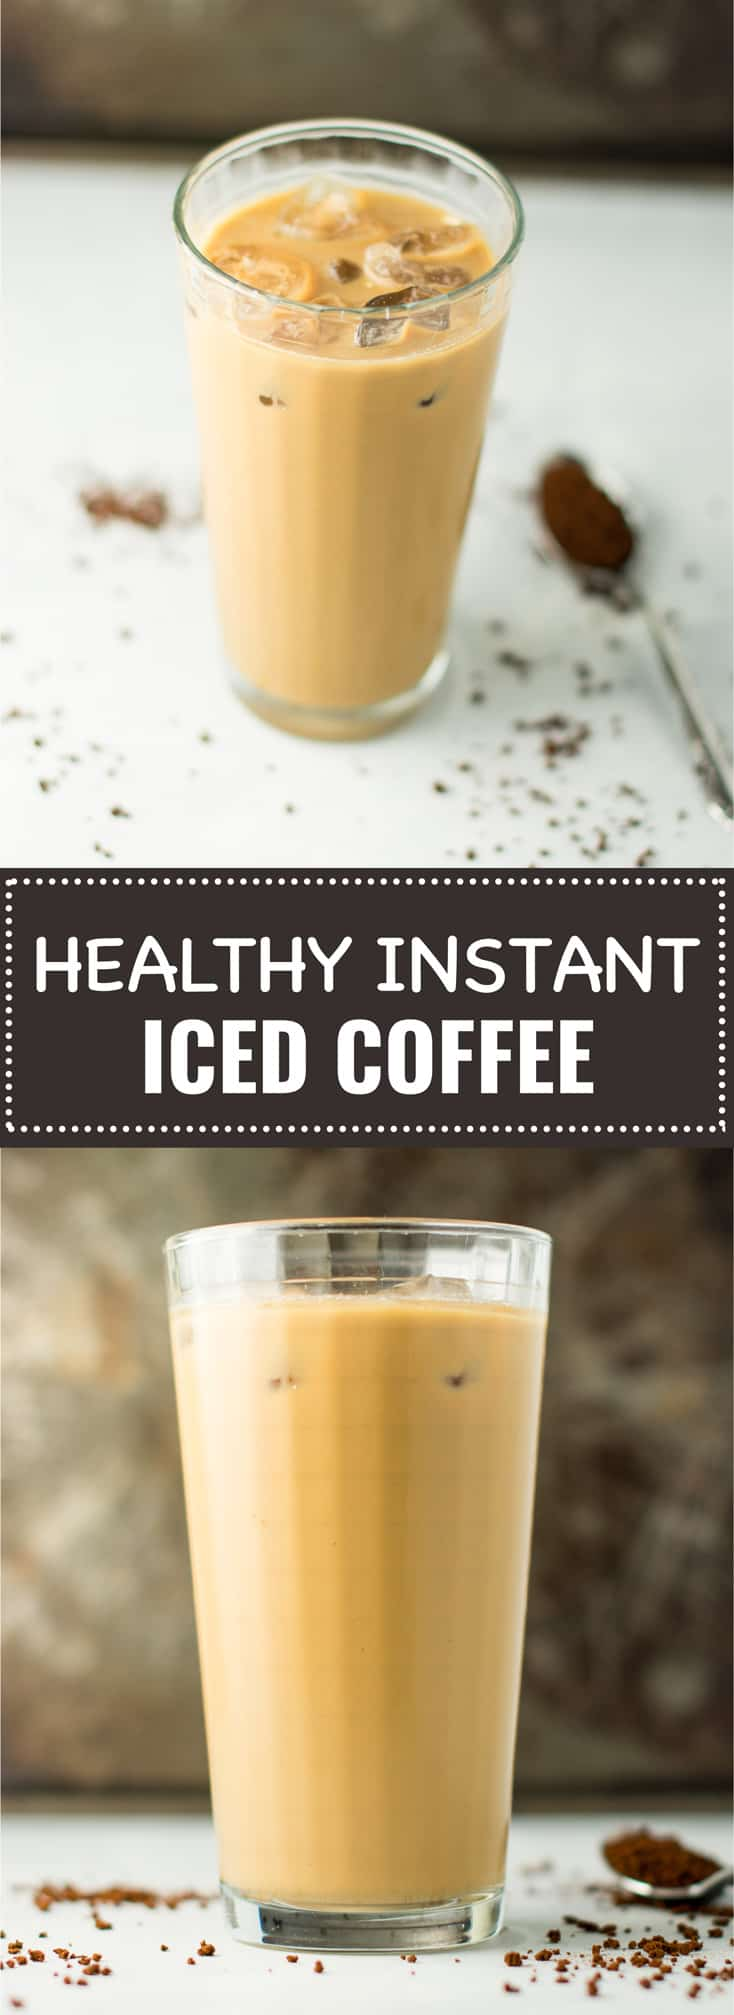 healthy instant iced coffee recipe (no hot water required!)